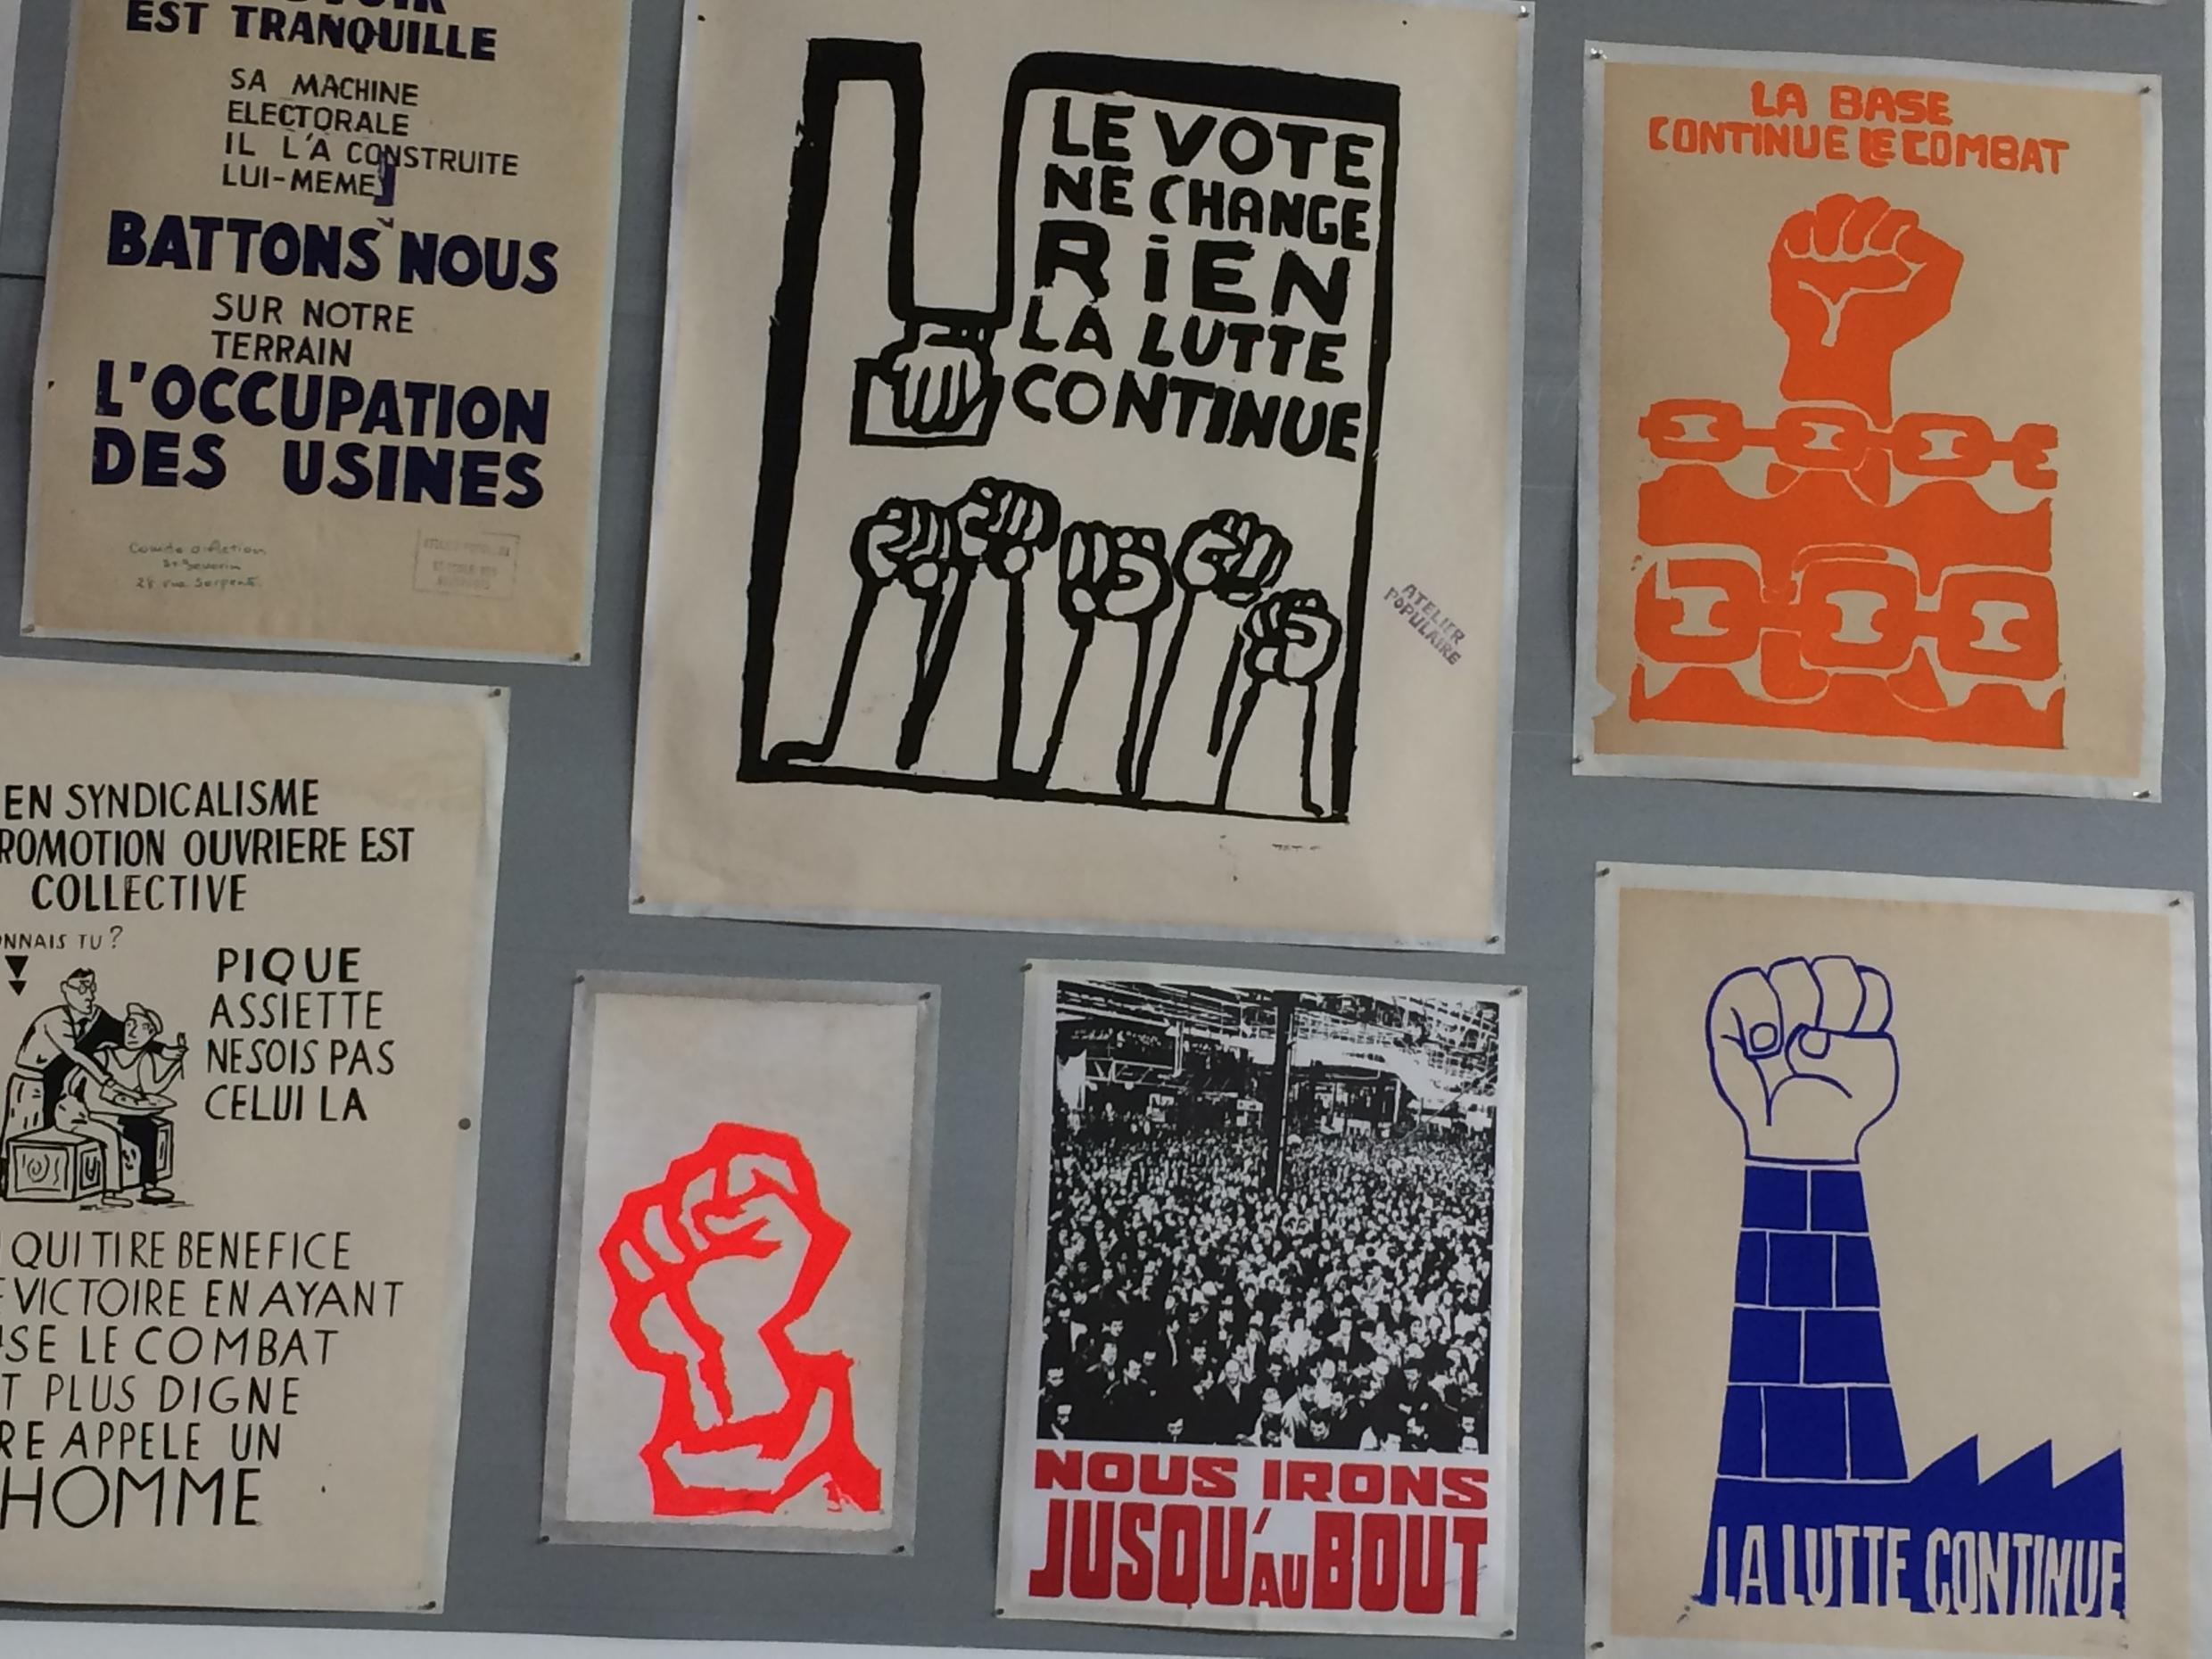 The factory shed became a leitmotiv in many of the Atelier's posters